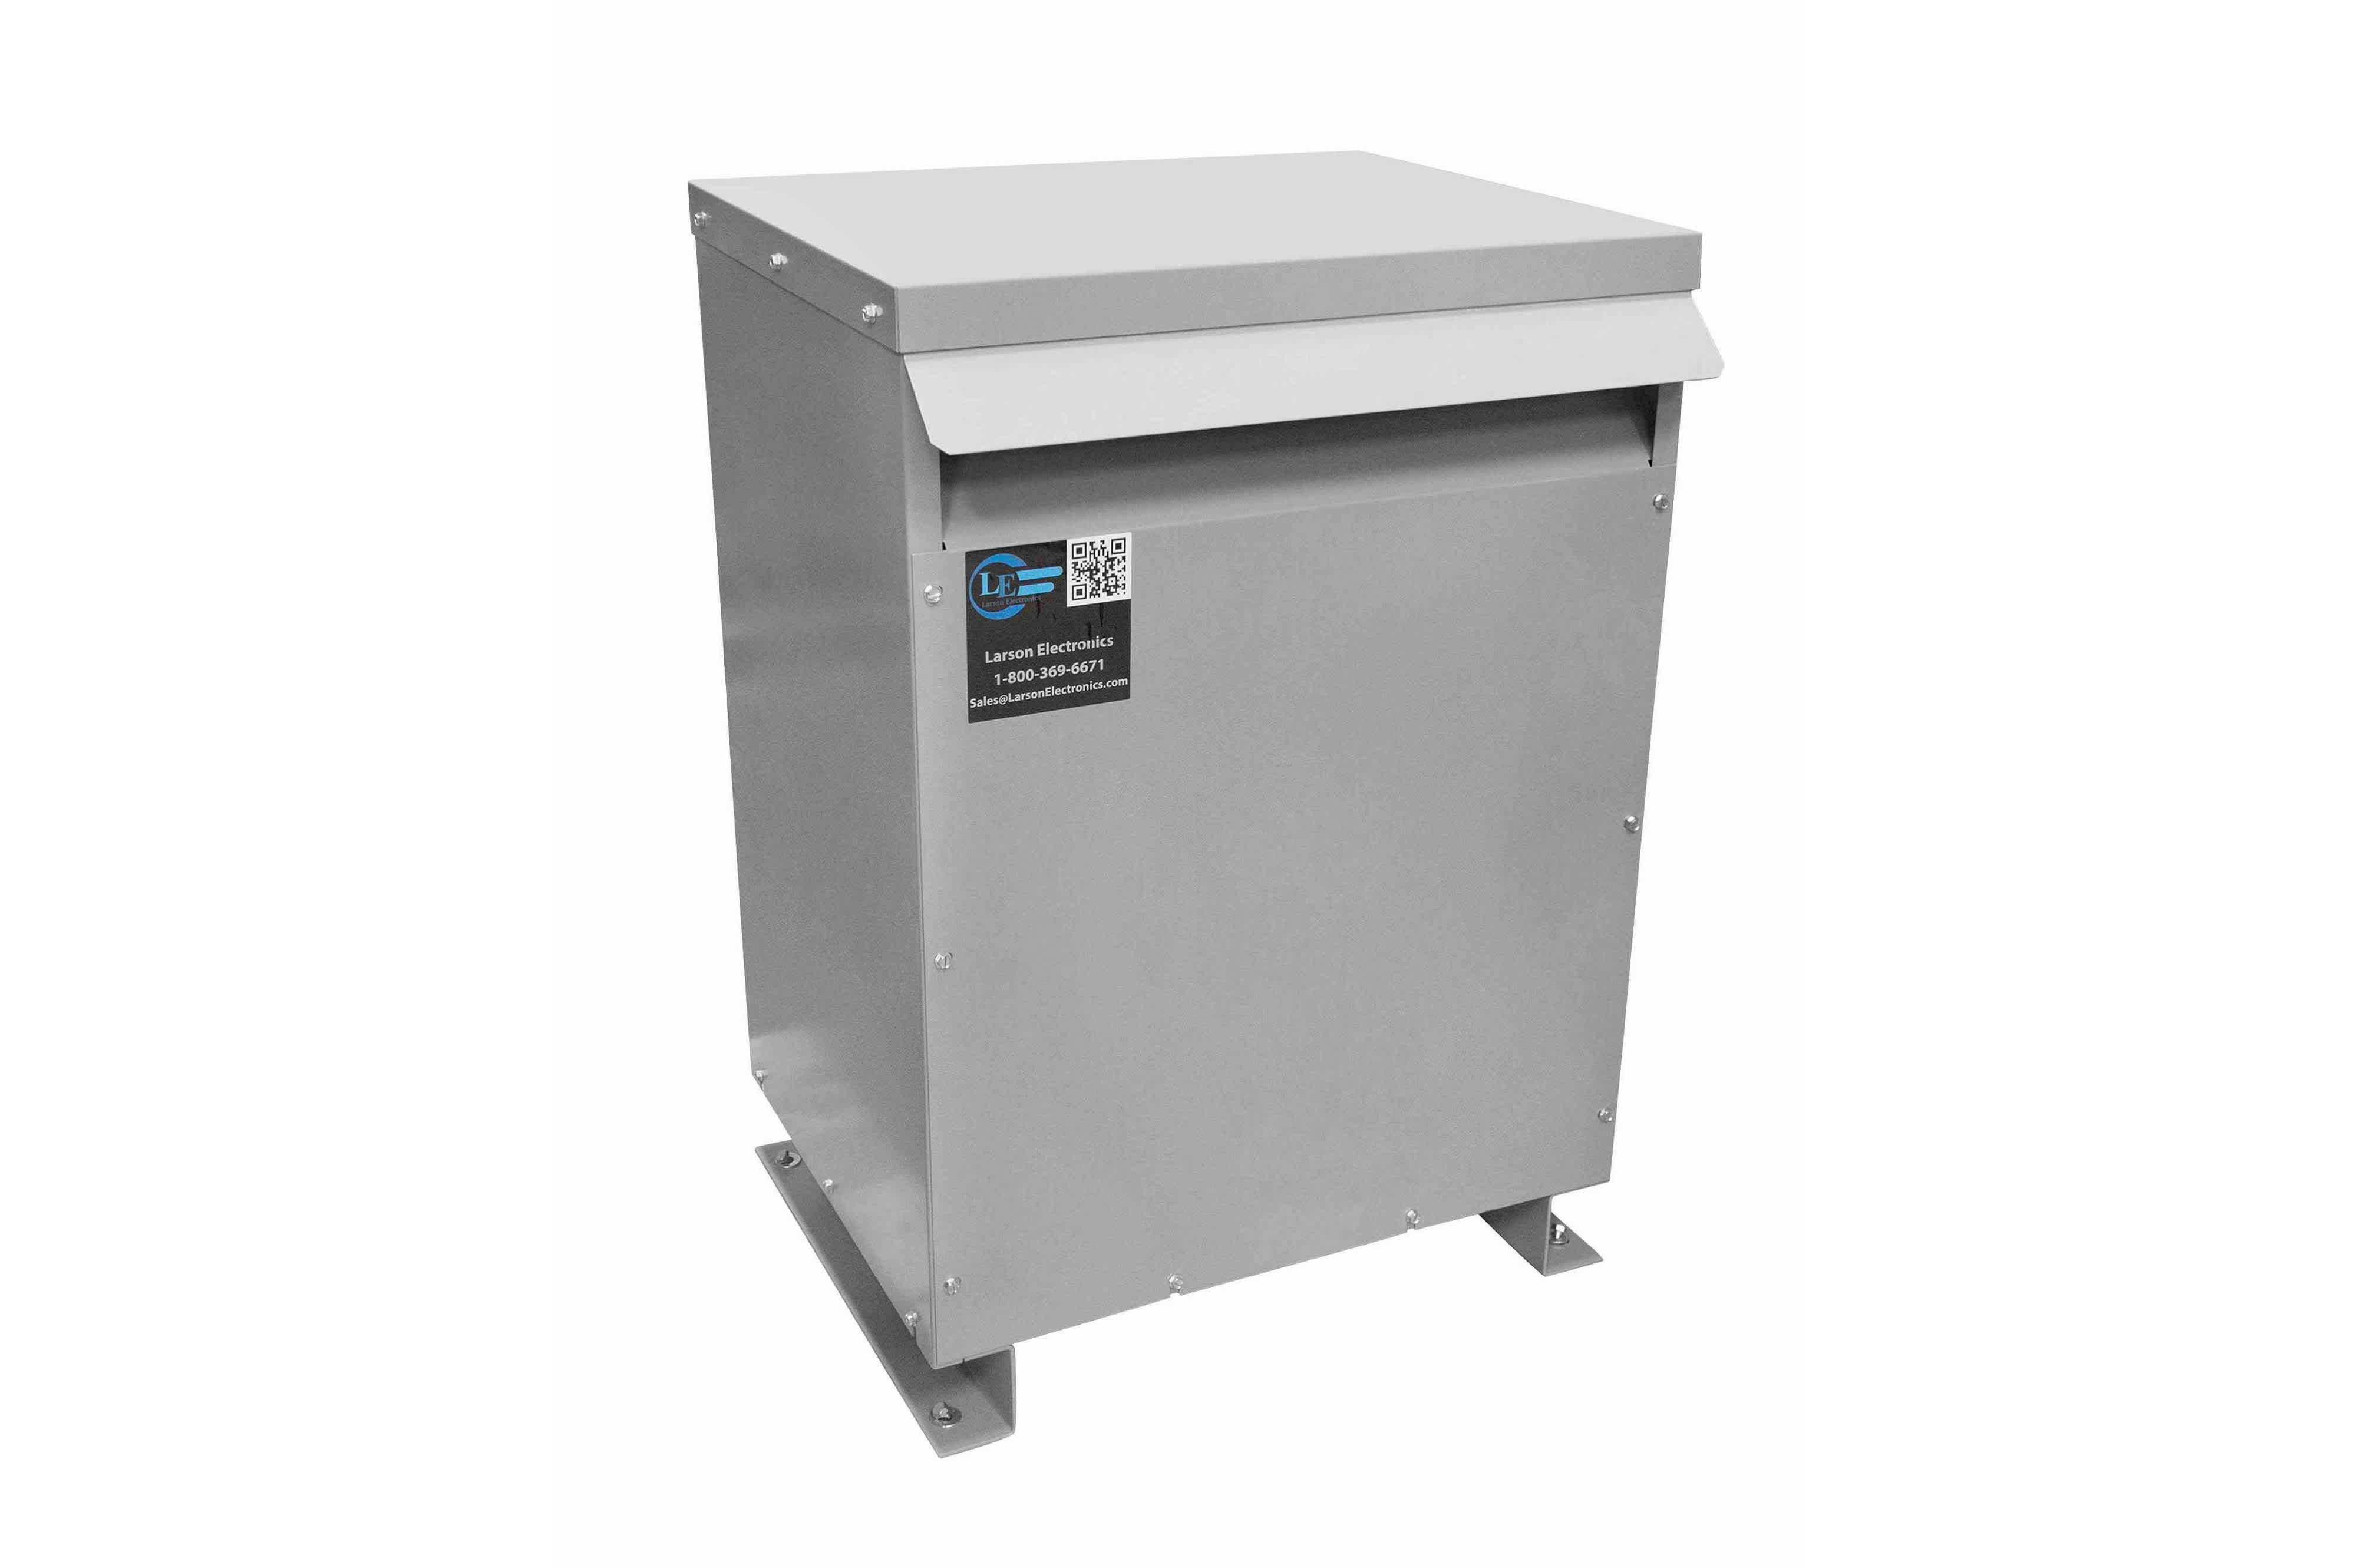 11 kVA 3PH Isolation Transformer, 240V Wye Primary, 400V Delta Secondary, N3R, Ventilated, 60 Hz